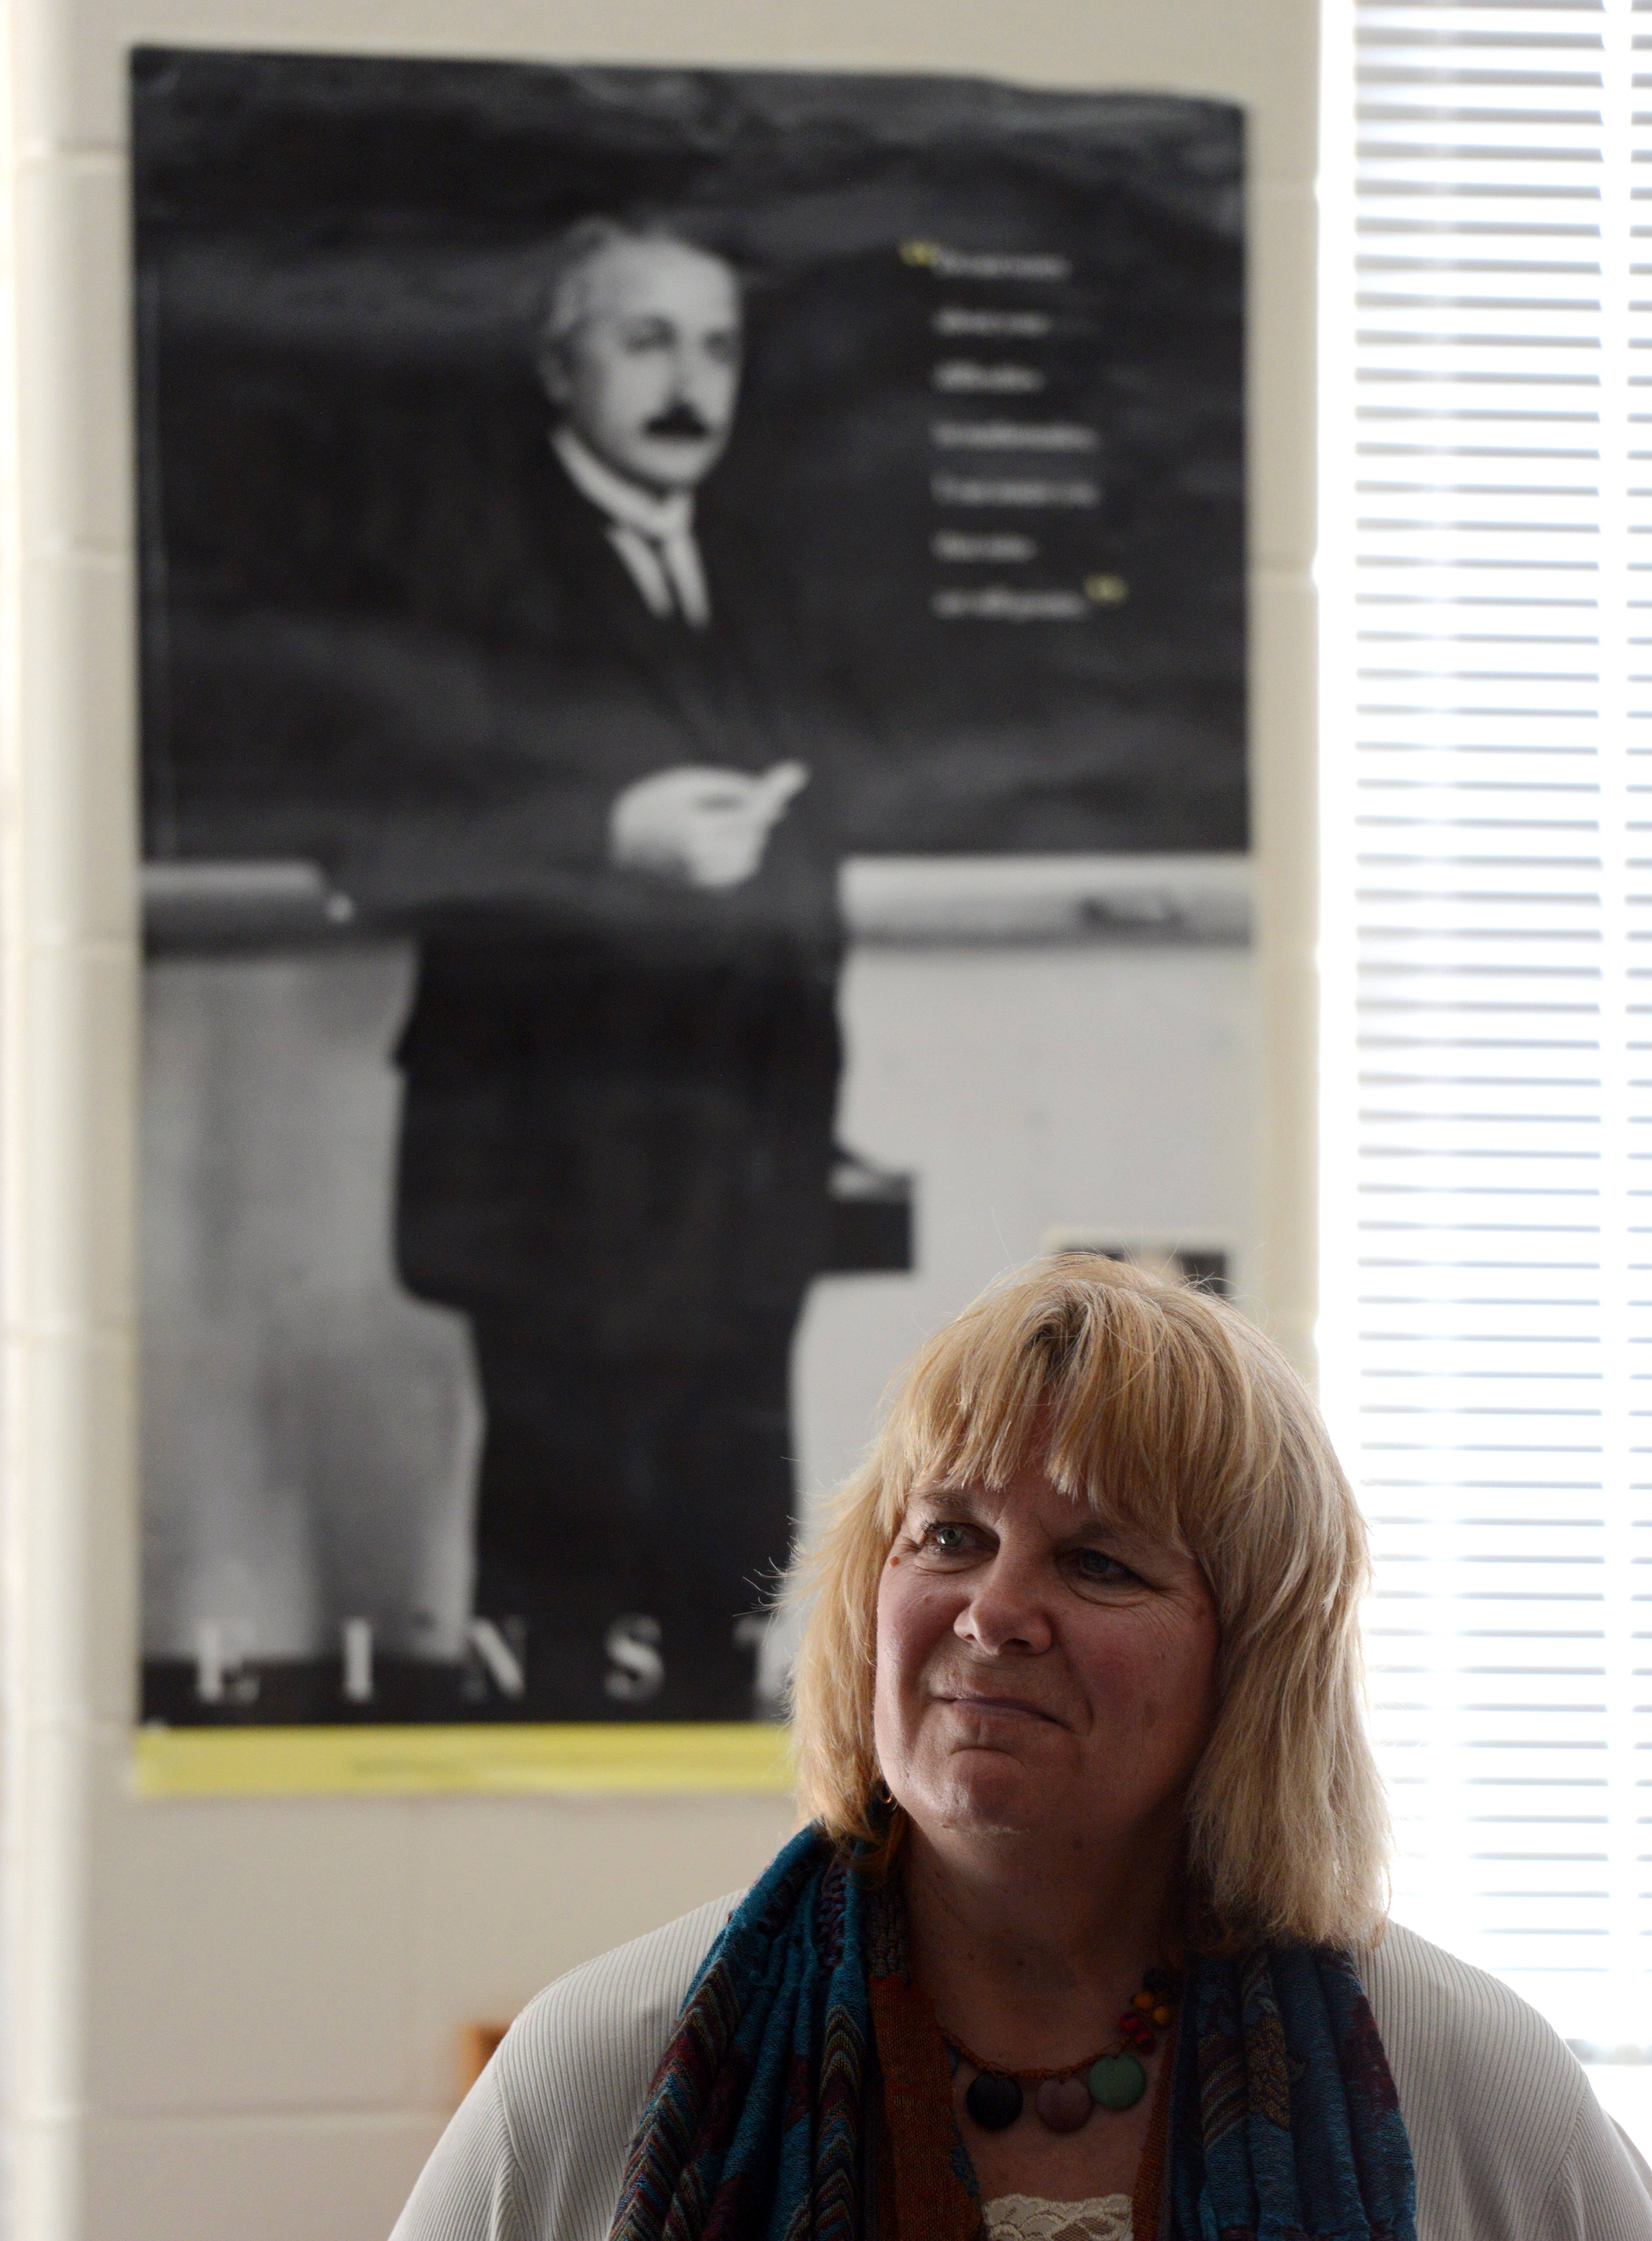 Nancy Krasinski watches as one of her fifth-grade students does a presentation at Williamsburg Elementary School in Geneva. She considers Einstein to be a primary influence on her and her teaching, and representations of him are all over her class in the form of posters, quotes and novelty gifts given by her students.